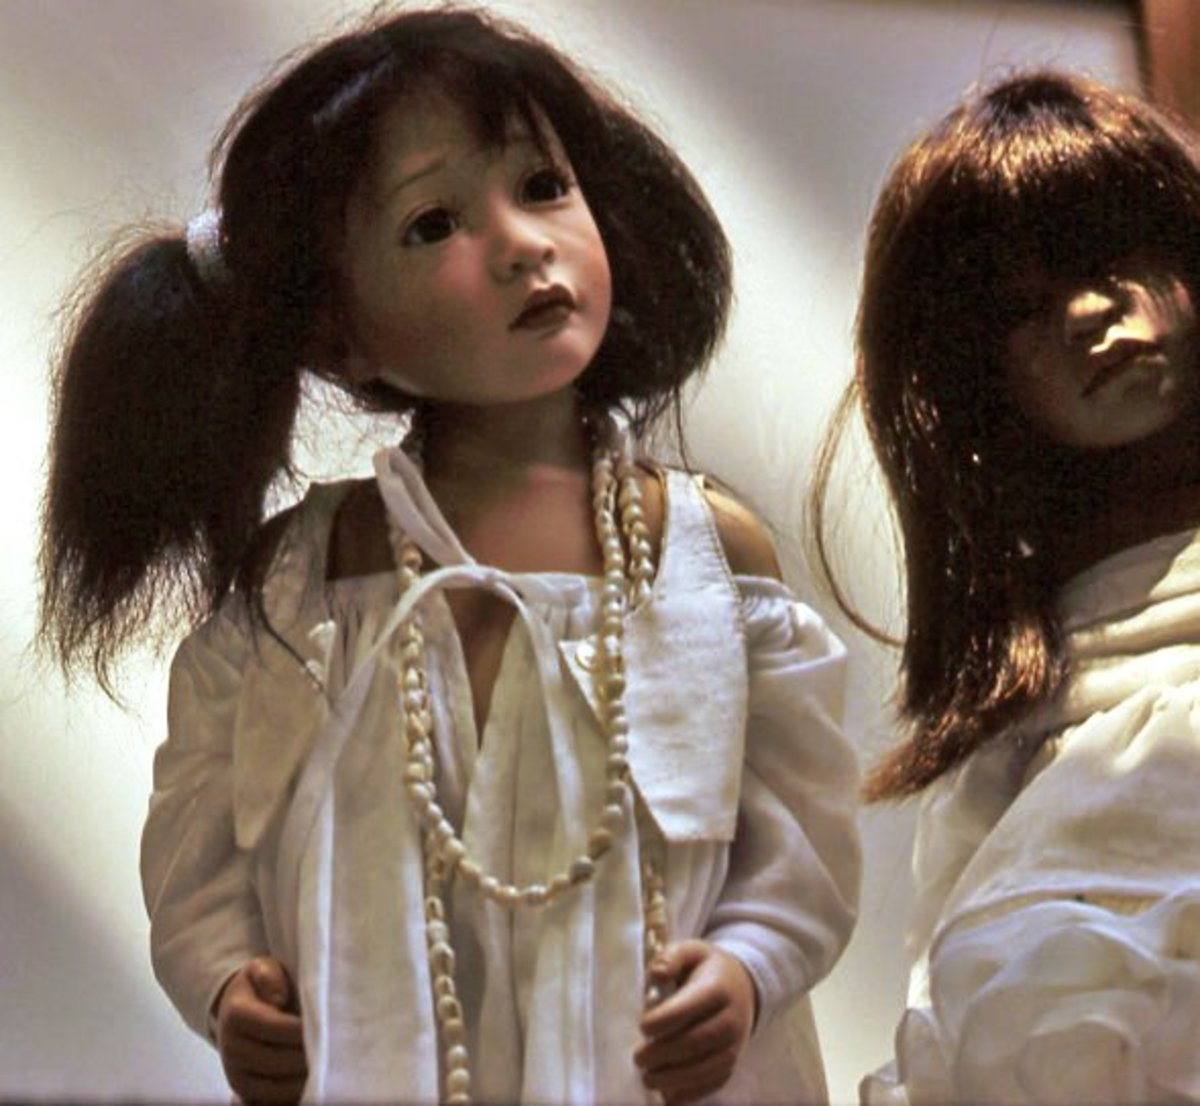 These two dolls find it hard to imagine that anyone might be afraid of them.